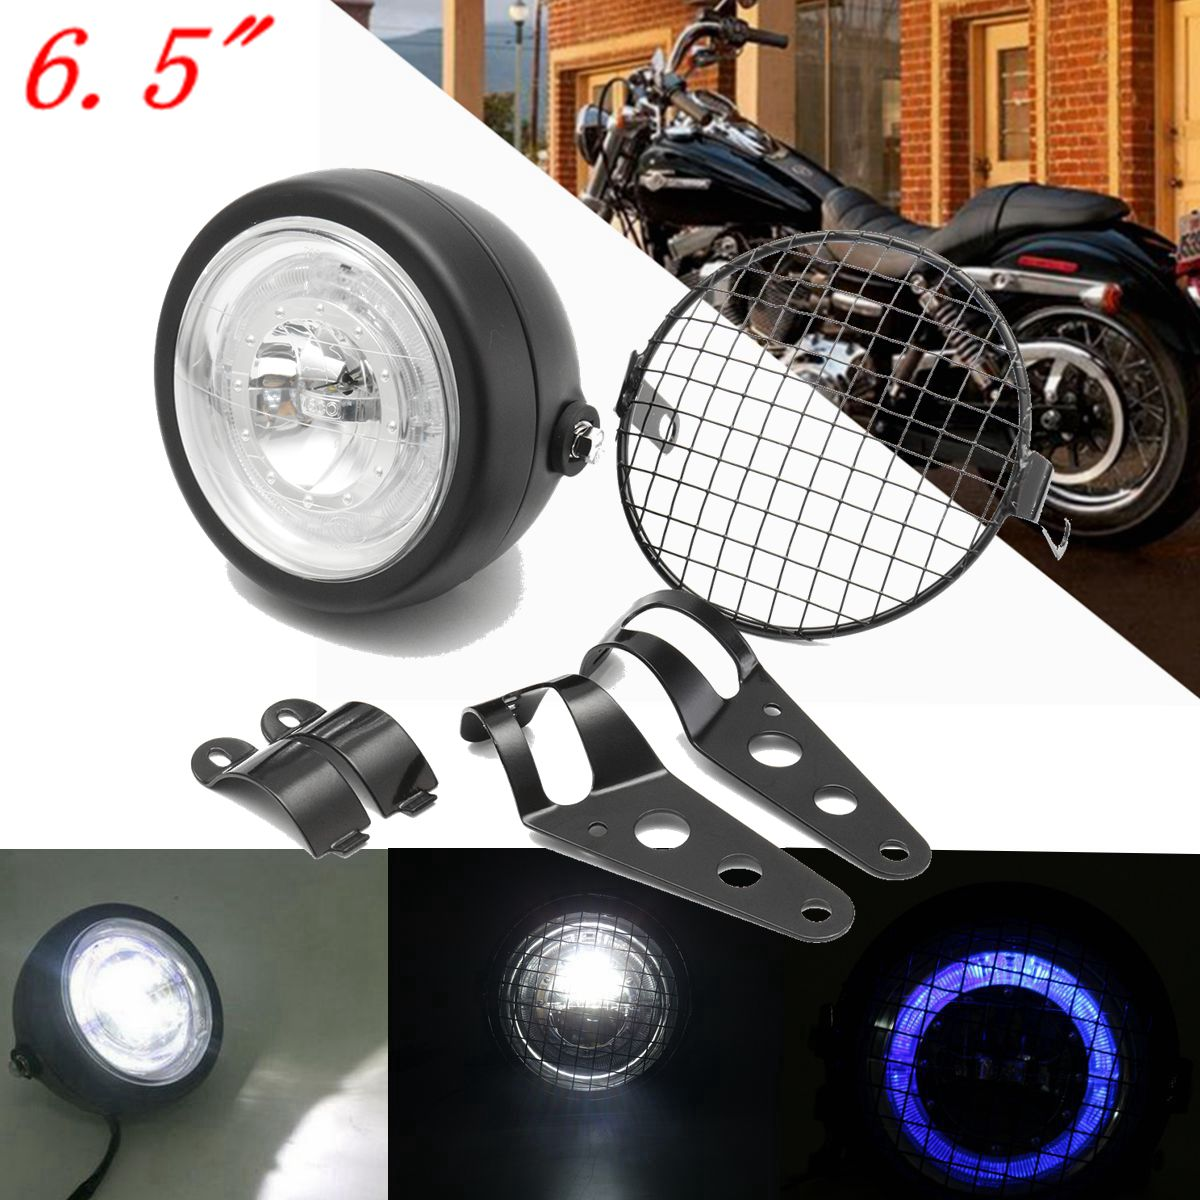 Universal 6.5 inch 12V Retro Motorcycle Headlight High/Low Beam Headlamp Grill Side Grille Mount Cover W/ Bracket Cafe Racer